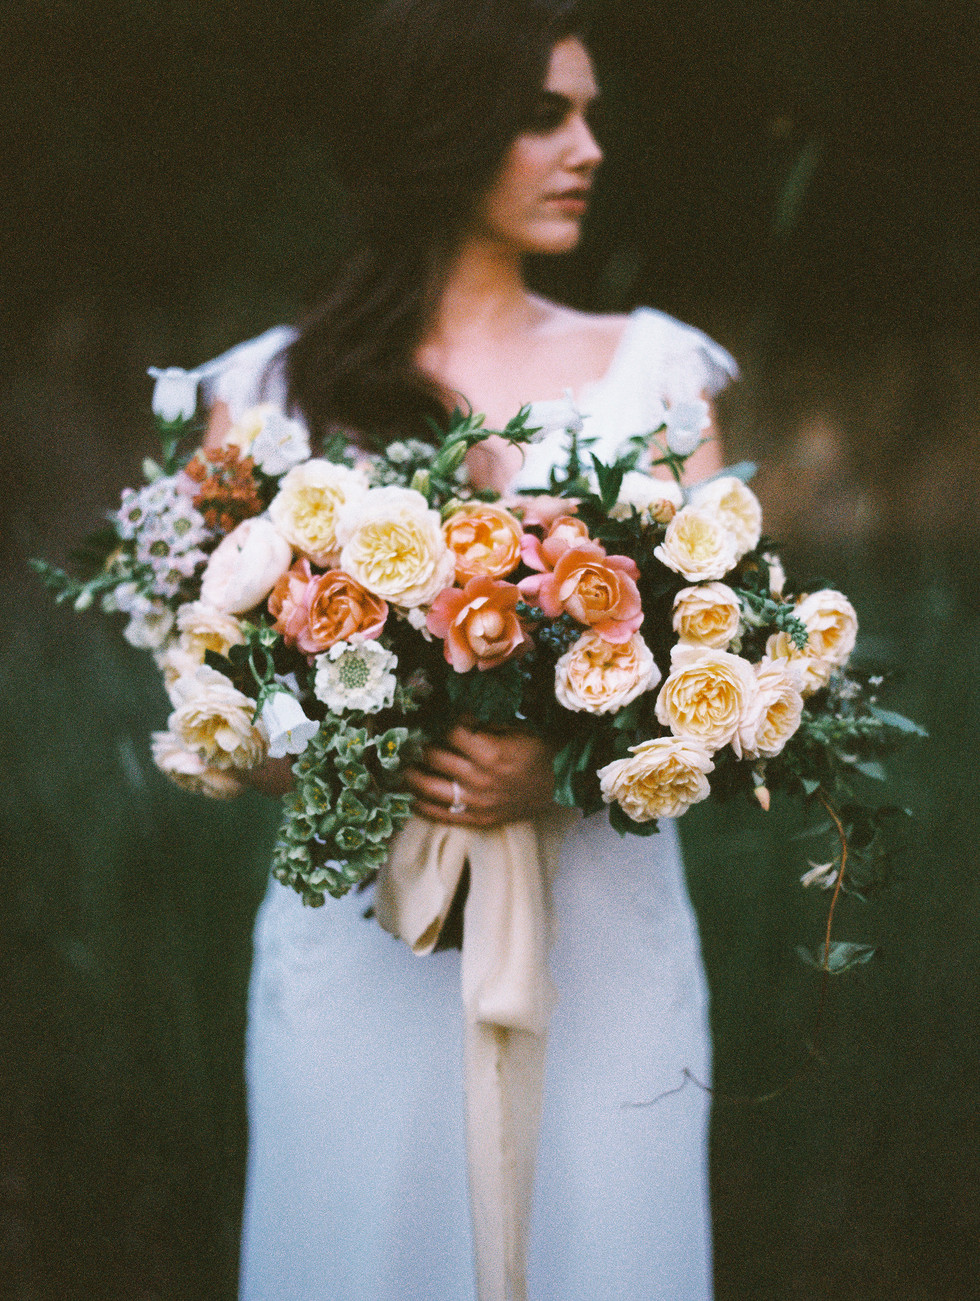 Moody peach and ivory bridal bouquet with garden roses, allium, fritillaria, campanula and lace flower. Photo: Shannon Elizabeth